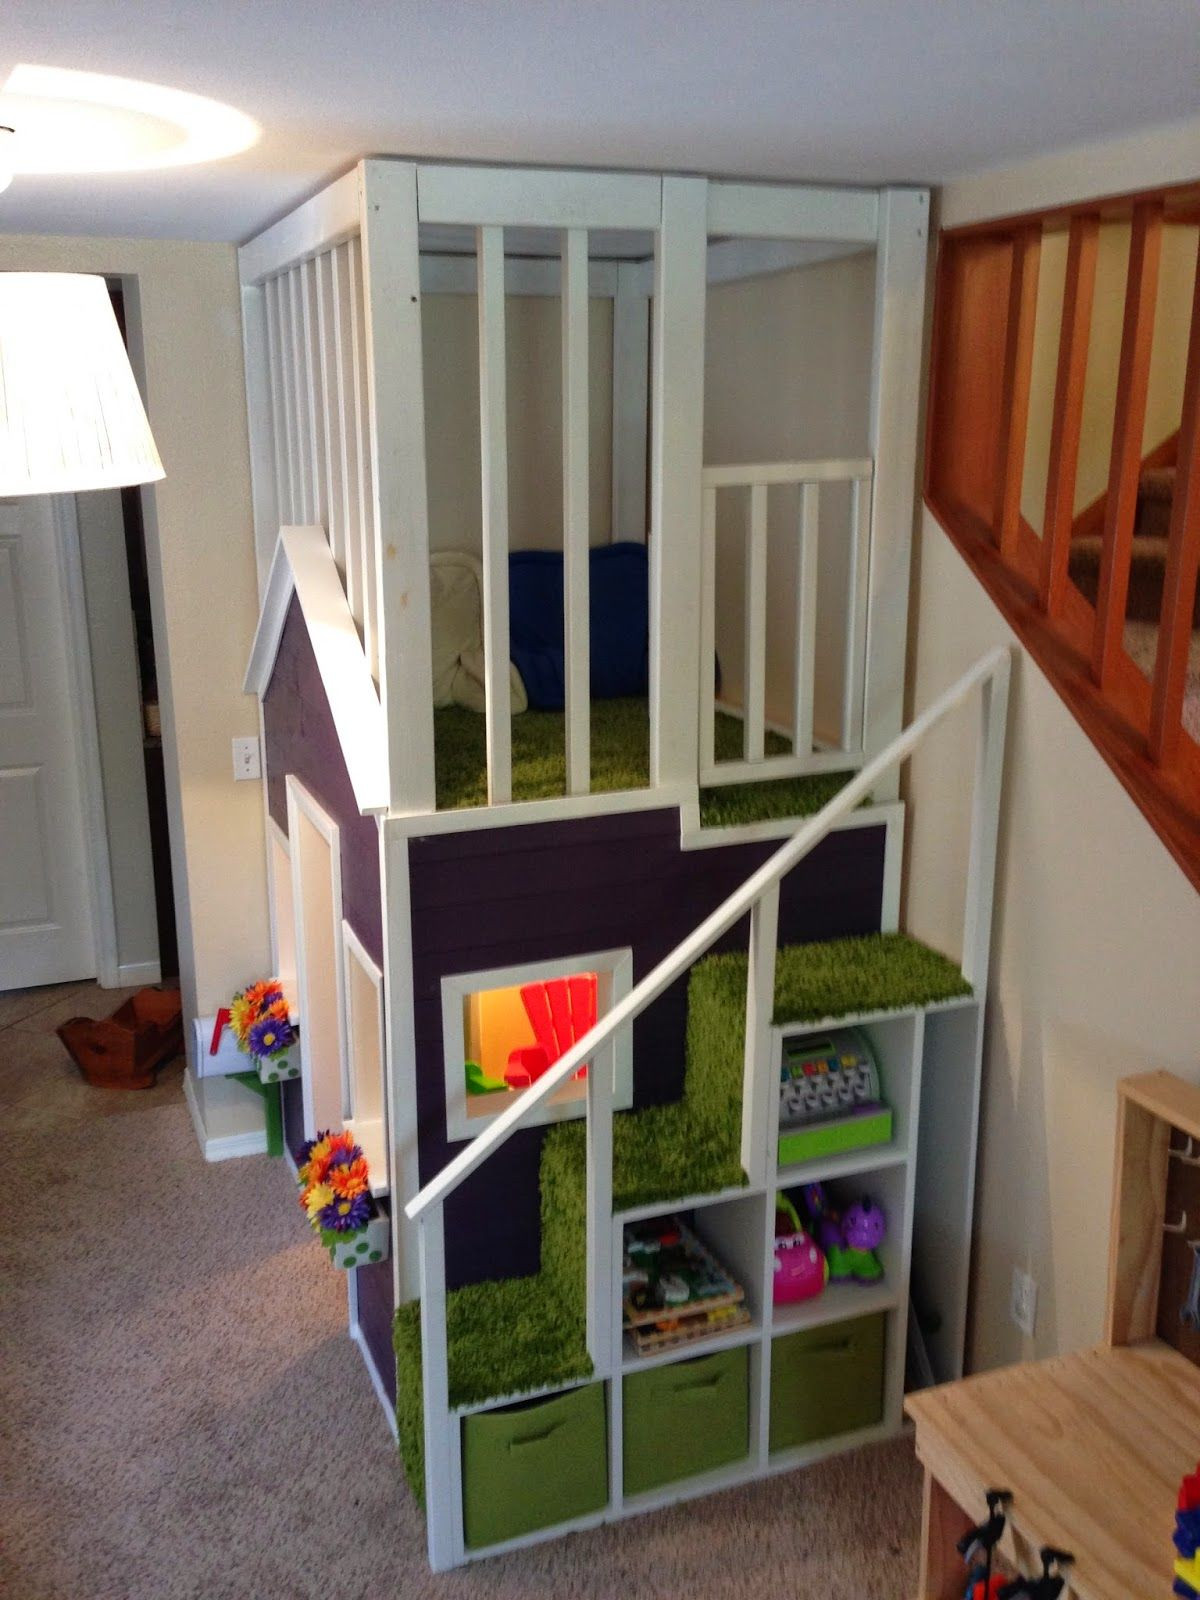 Best ideas about DIY Kids Playroom . Save or Pin Detailed instructions and material list This is happening Now.